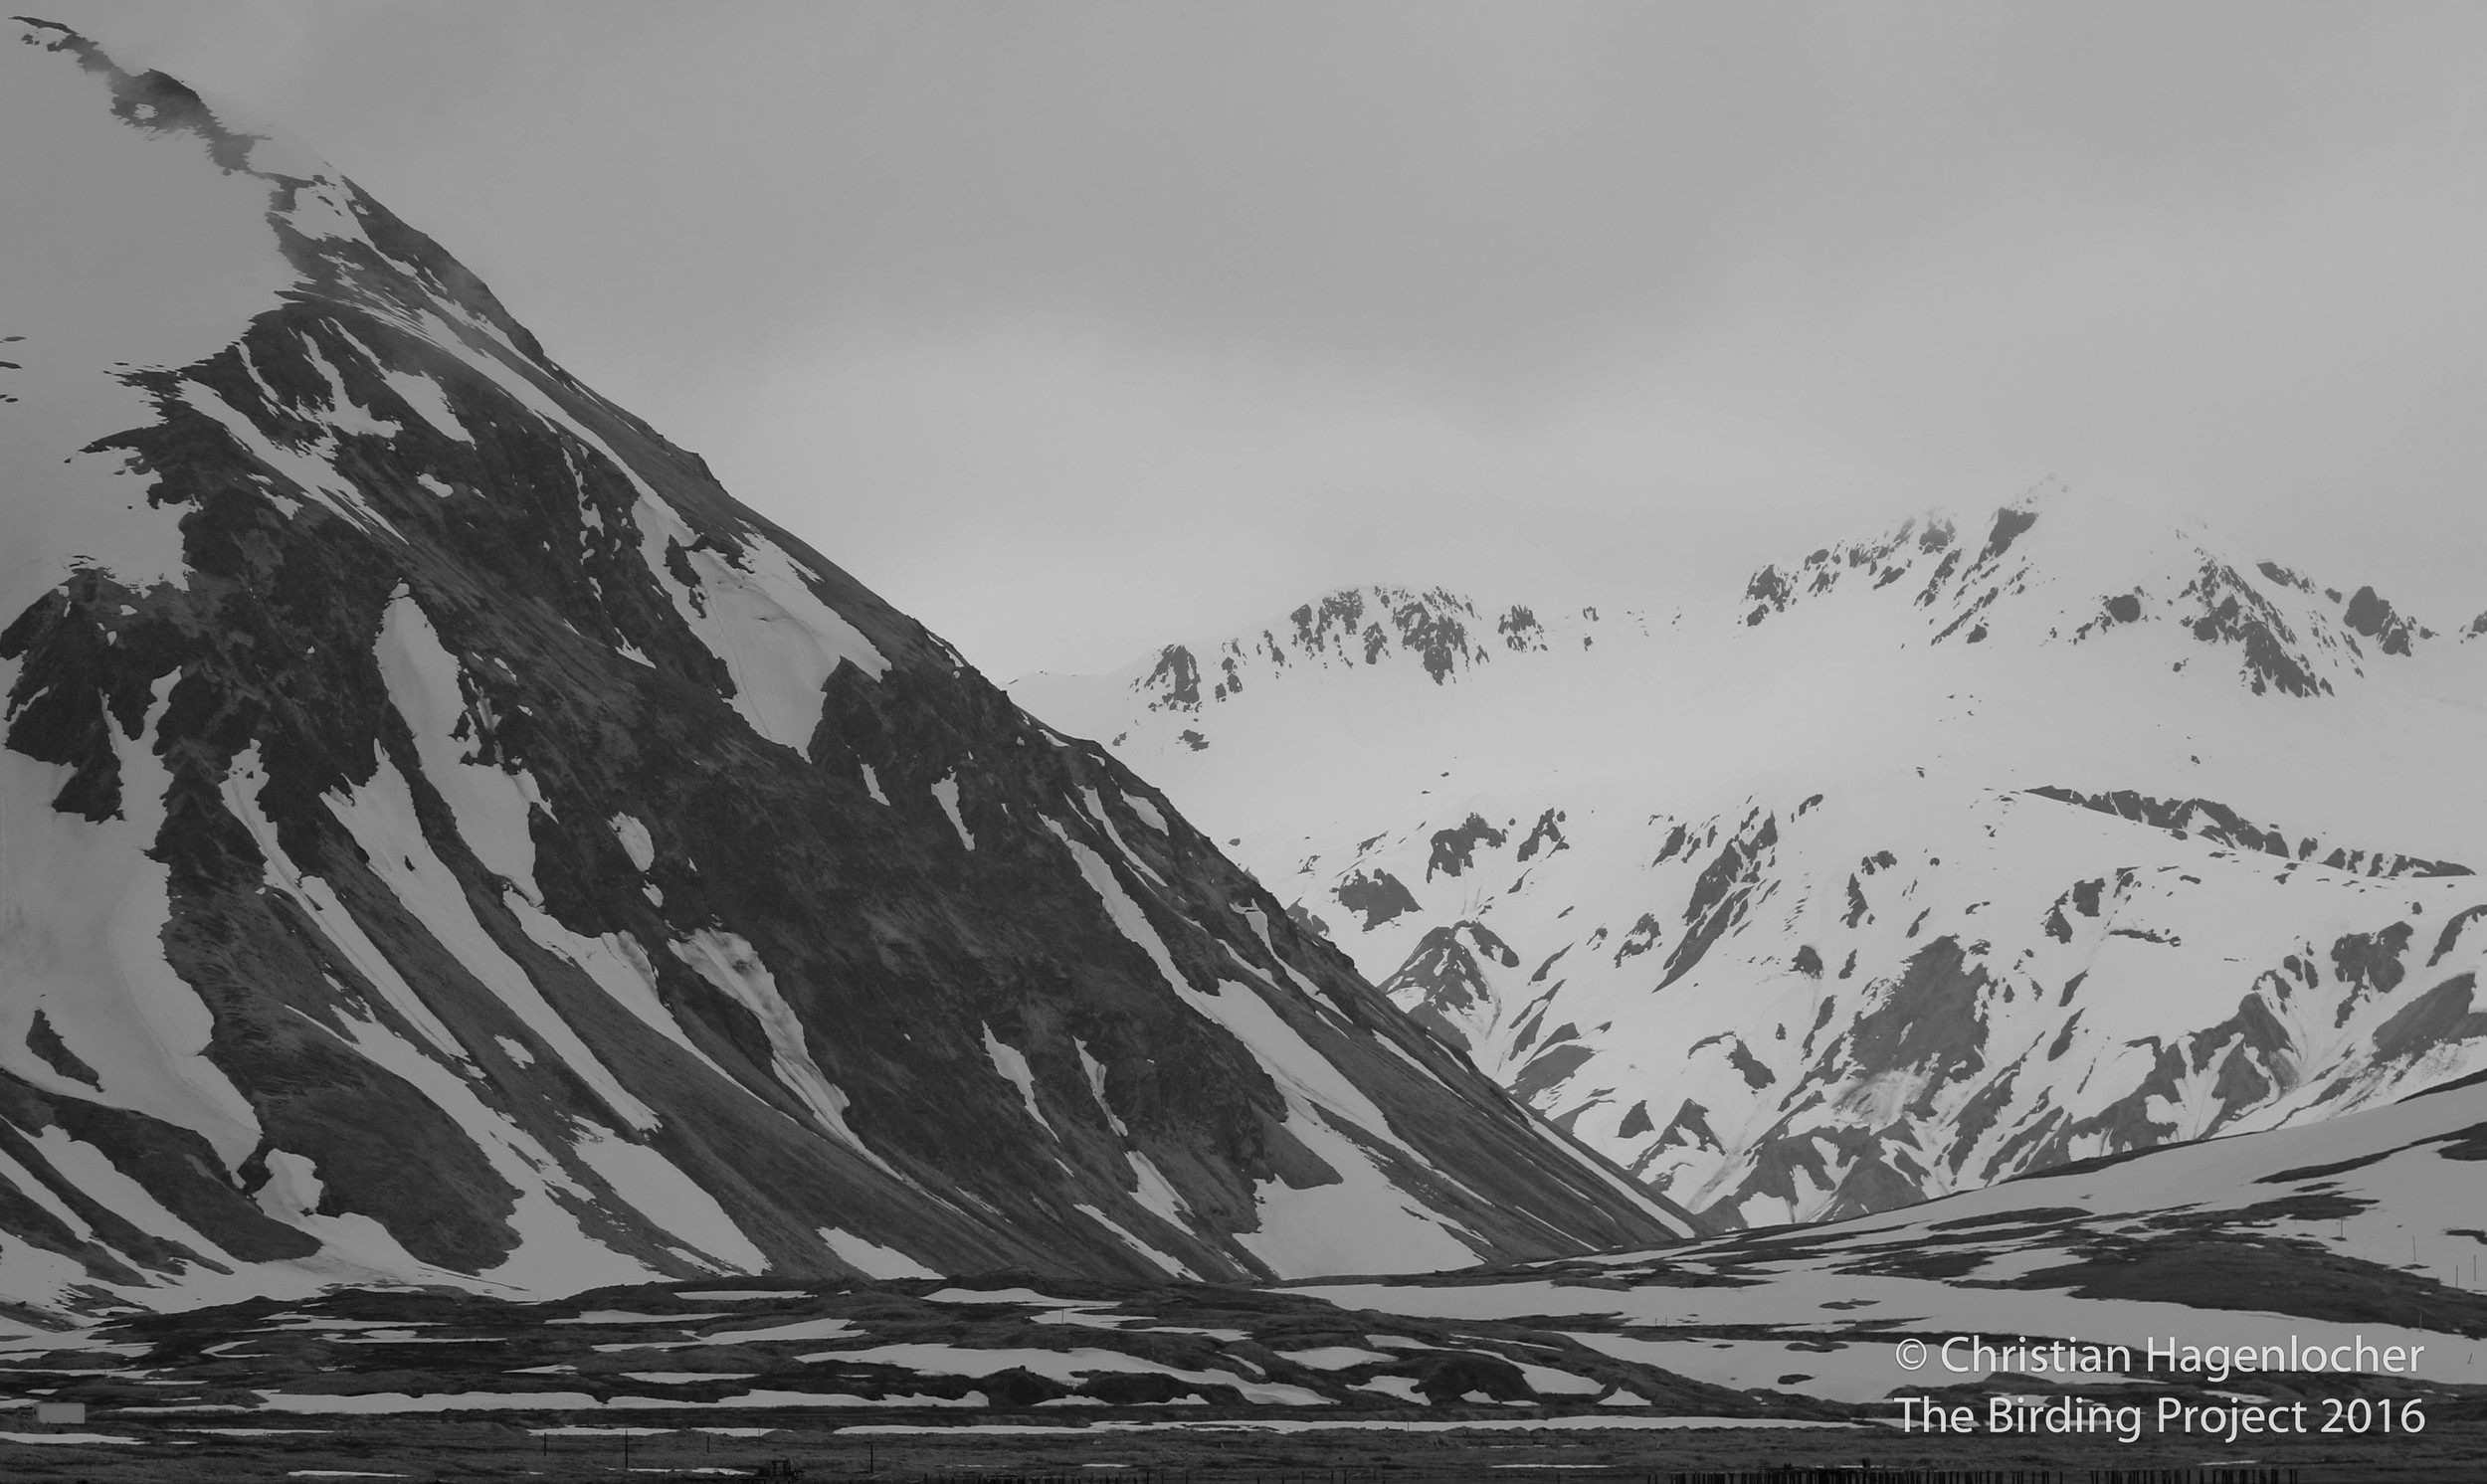 Snow-covered peaks rise from the sea, disappearing into the cloudy sky